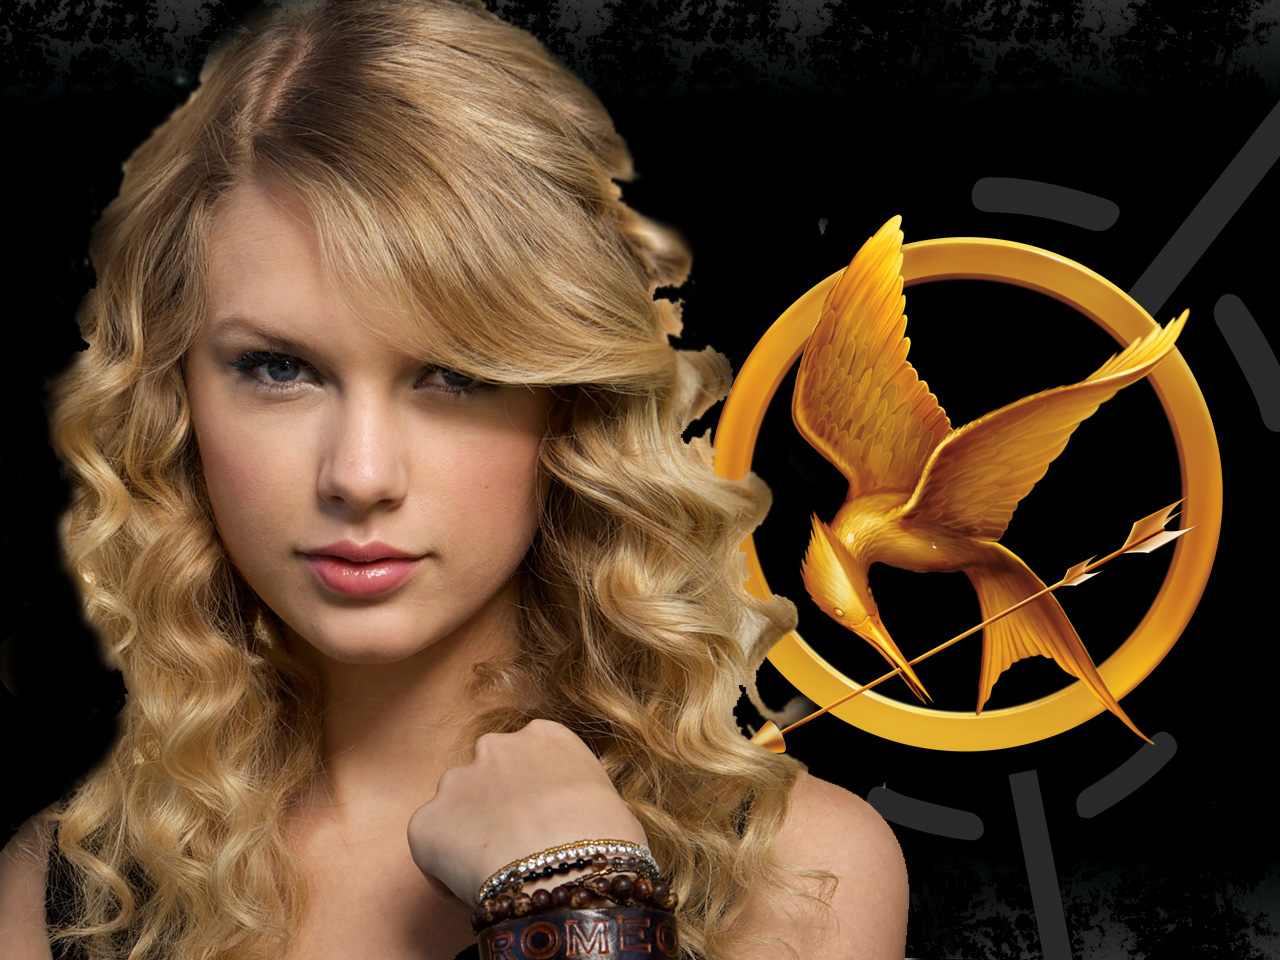 http://3.bp.blogspot.com/-_cDCtGcnm70/TvRJ-NZDXTI/AAAAAAAAG2Q/DdBc9vc1pHc/s1600/The-Hunger-Games-the-hunger-game-trilogy-2624991-1280-960.jpg